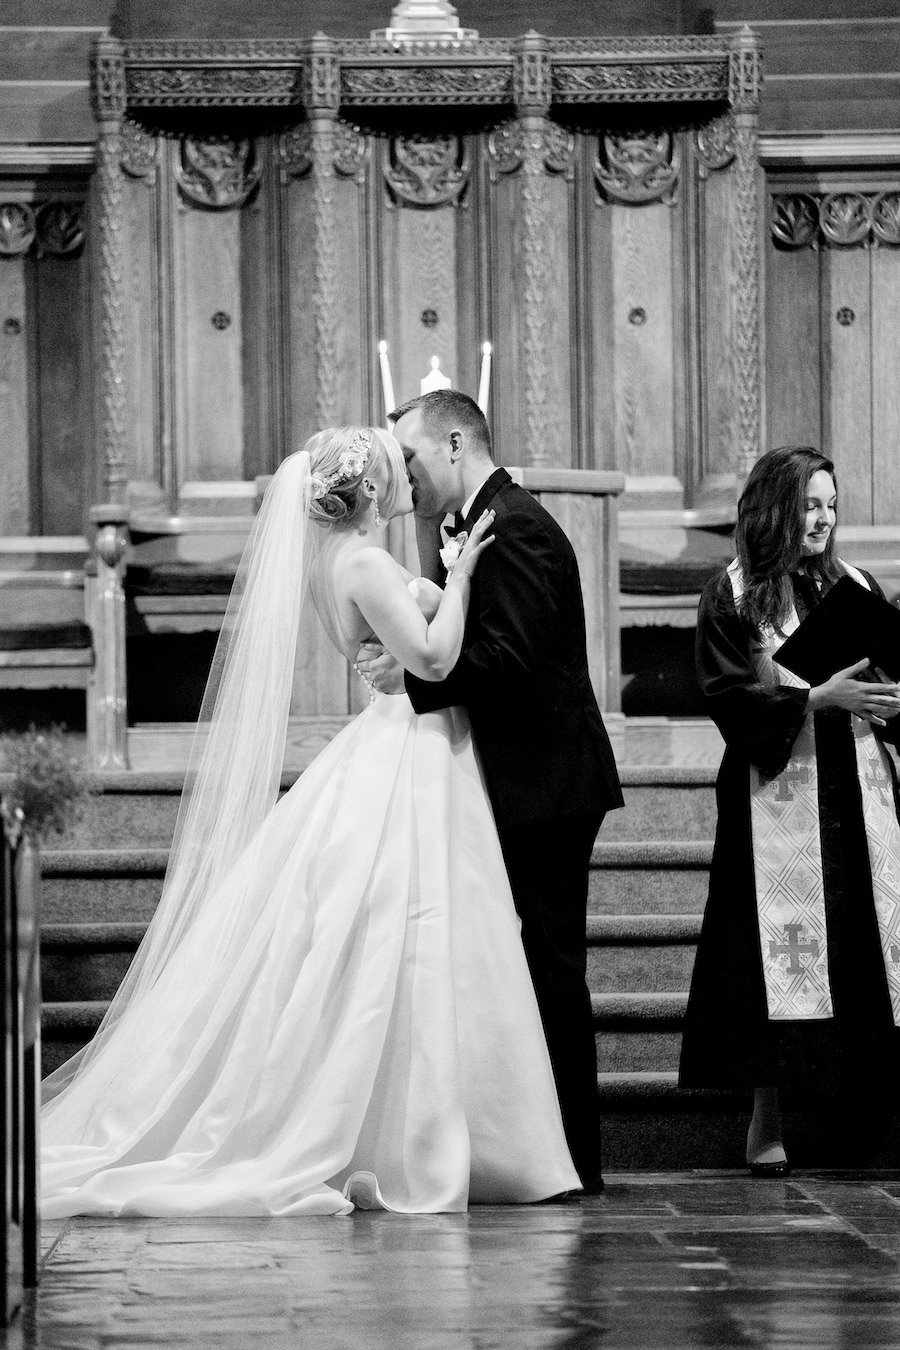 A bride and groom sharing their first kiss during their Kalamazoo, Michigan wedding